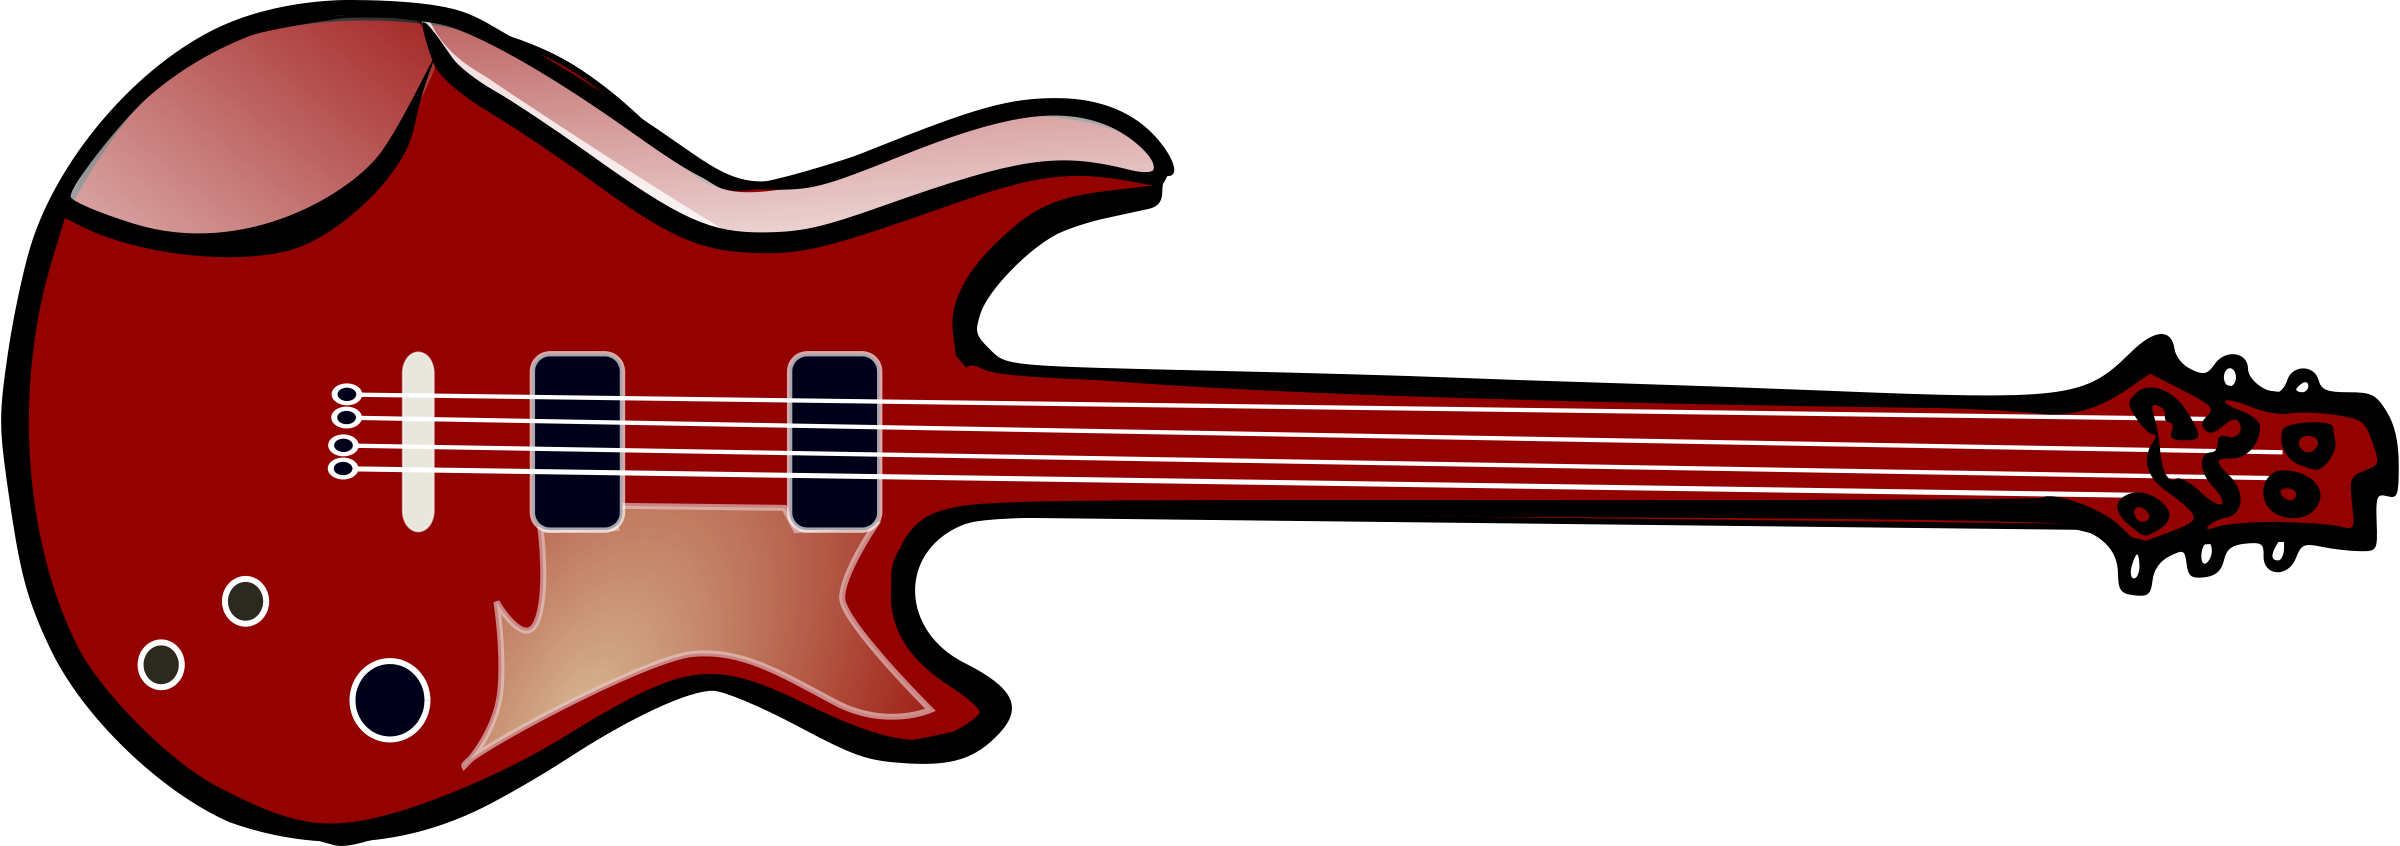 Electric Guitar Clipart.